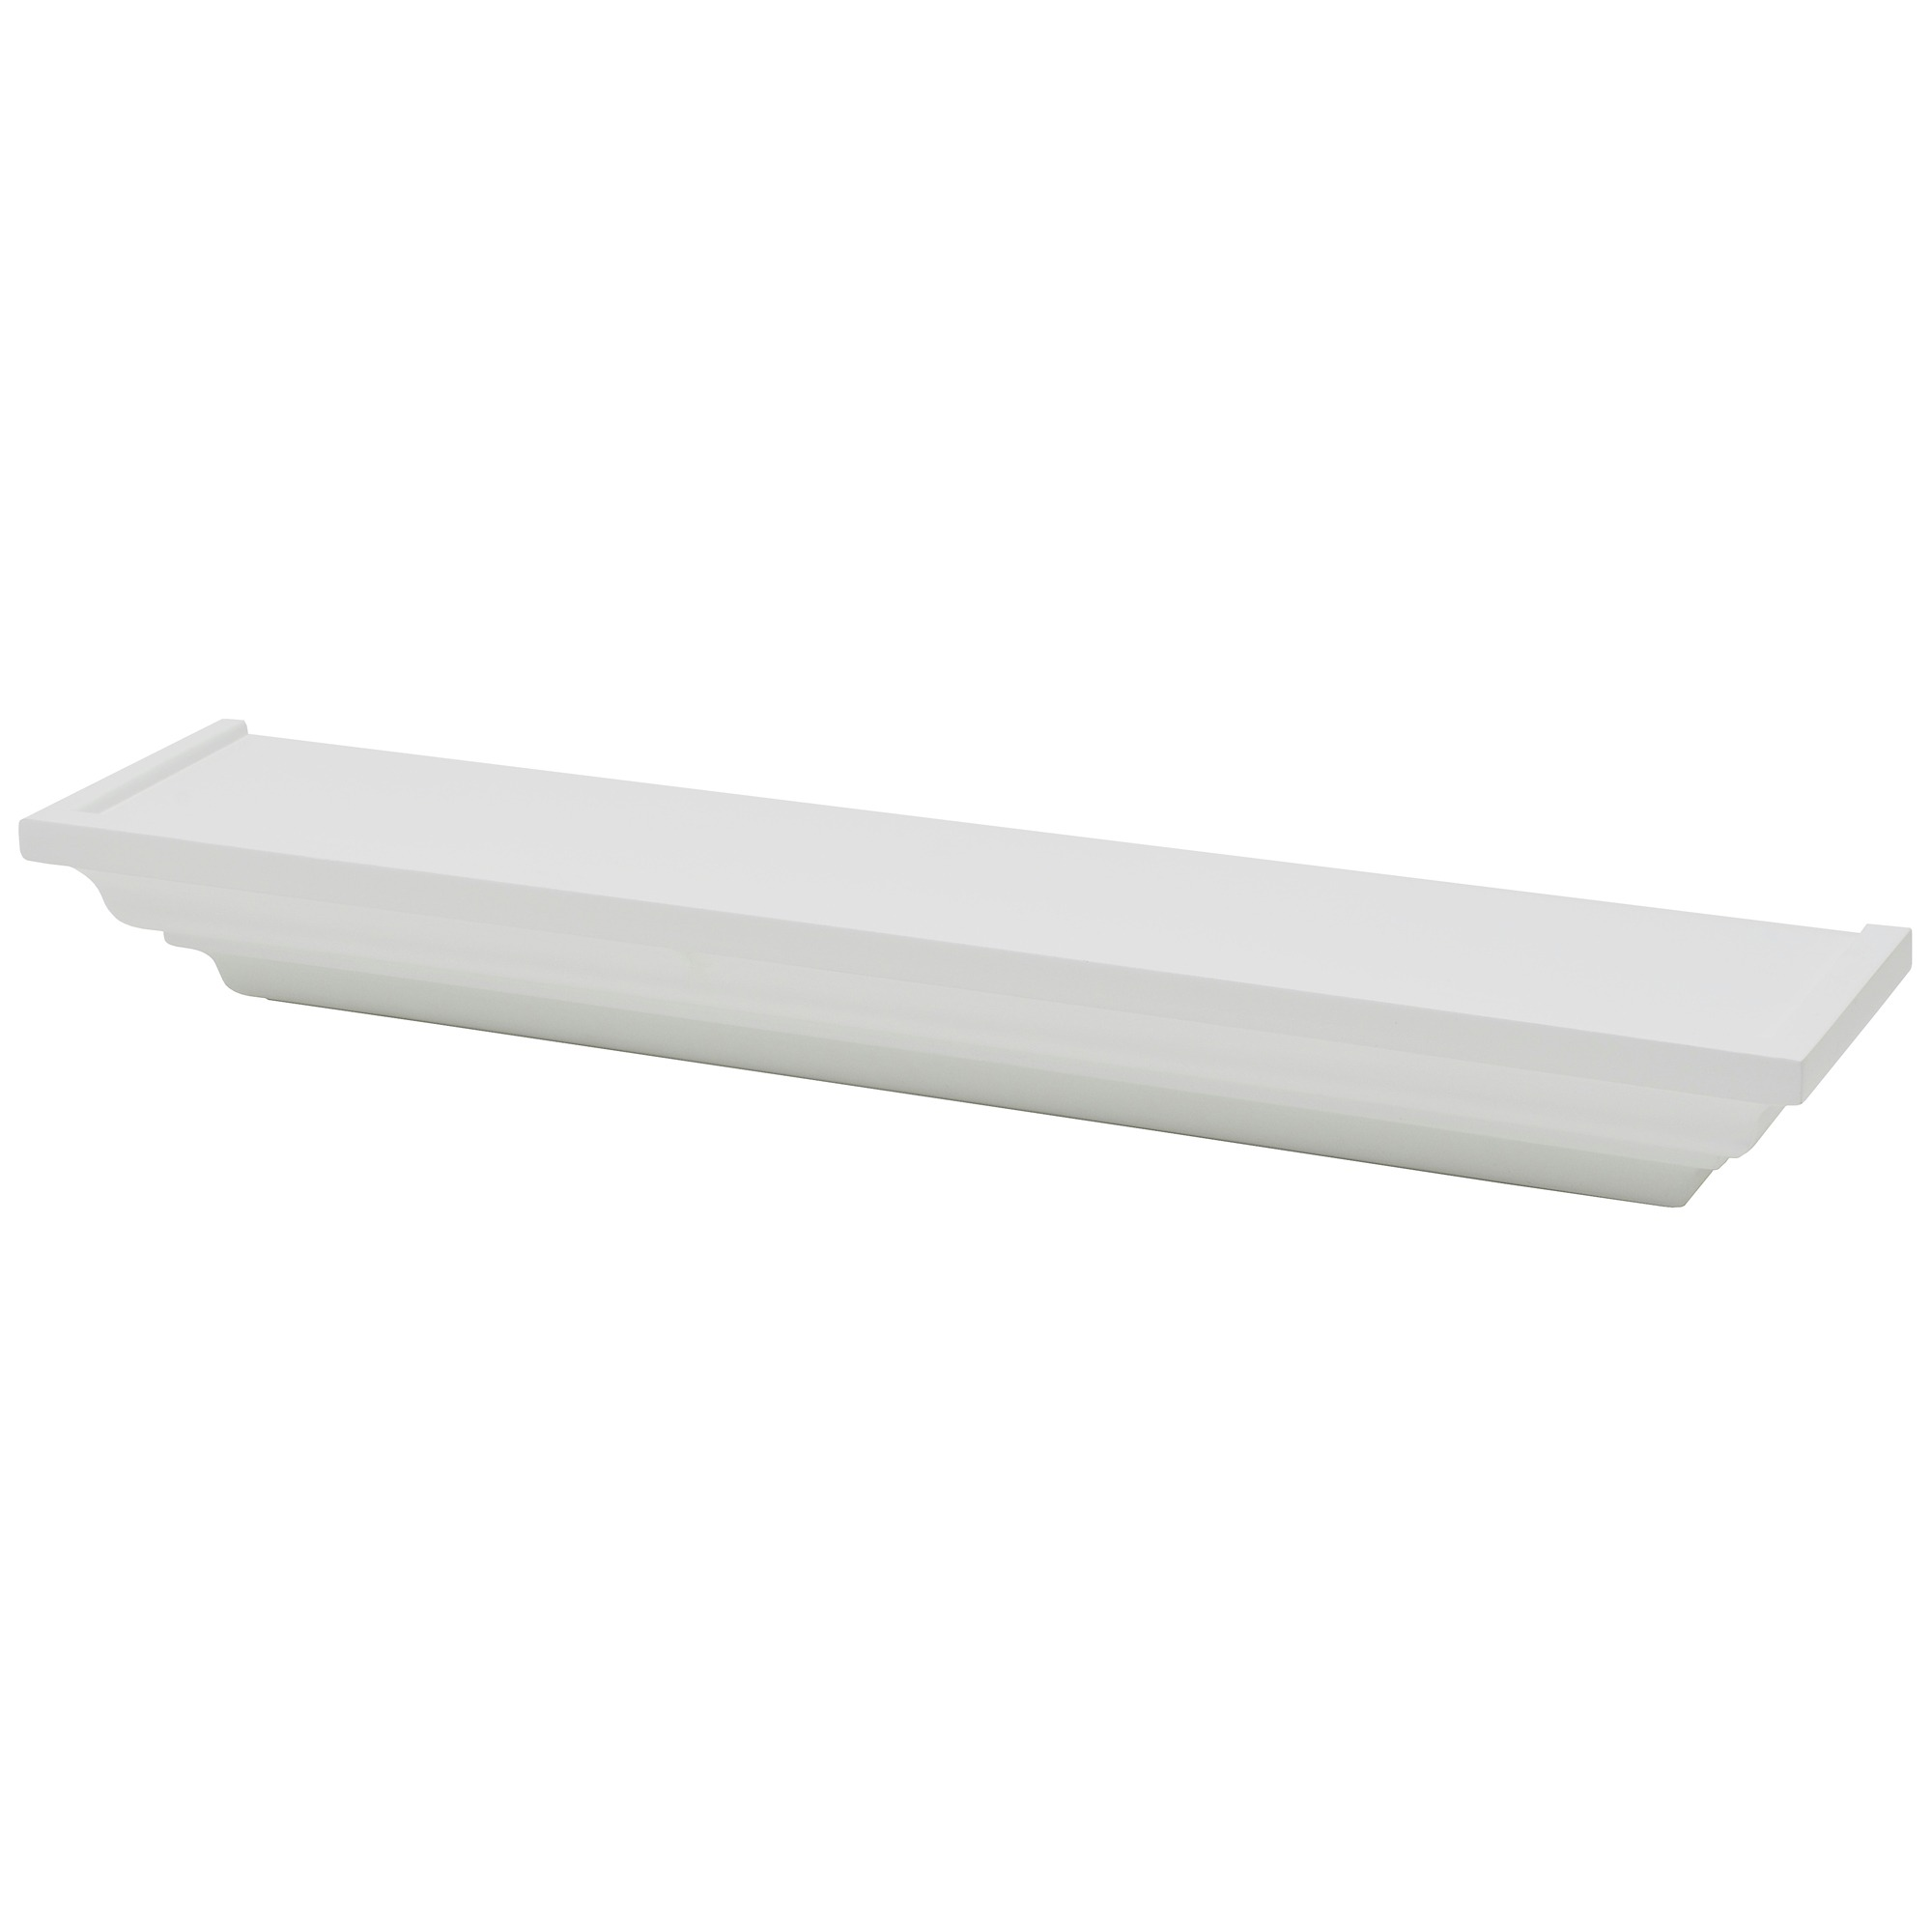 Tablette classique duraline ornament 60 cm blanc for Tablette duraline